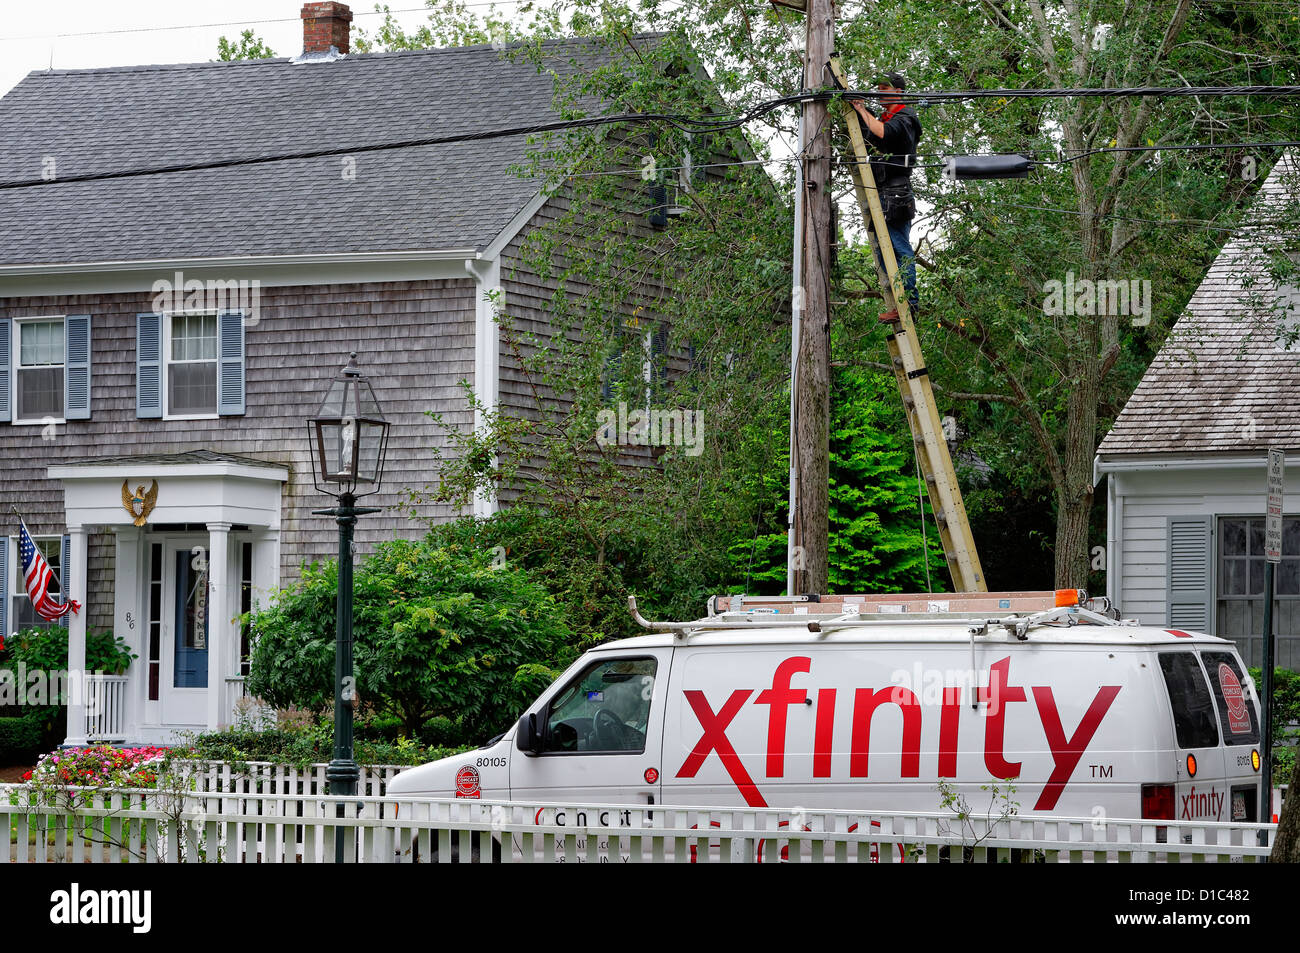 Cable Tv Installation Stock Photos Comcast Wiring Diagram Worker Intalls Xfinity Service To Residential Home Marthas Vineyard Massachusetts Usa